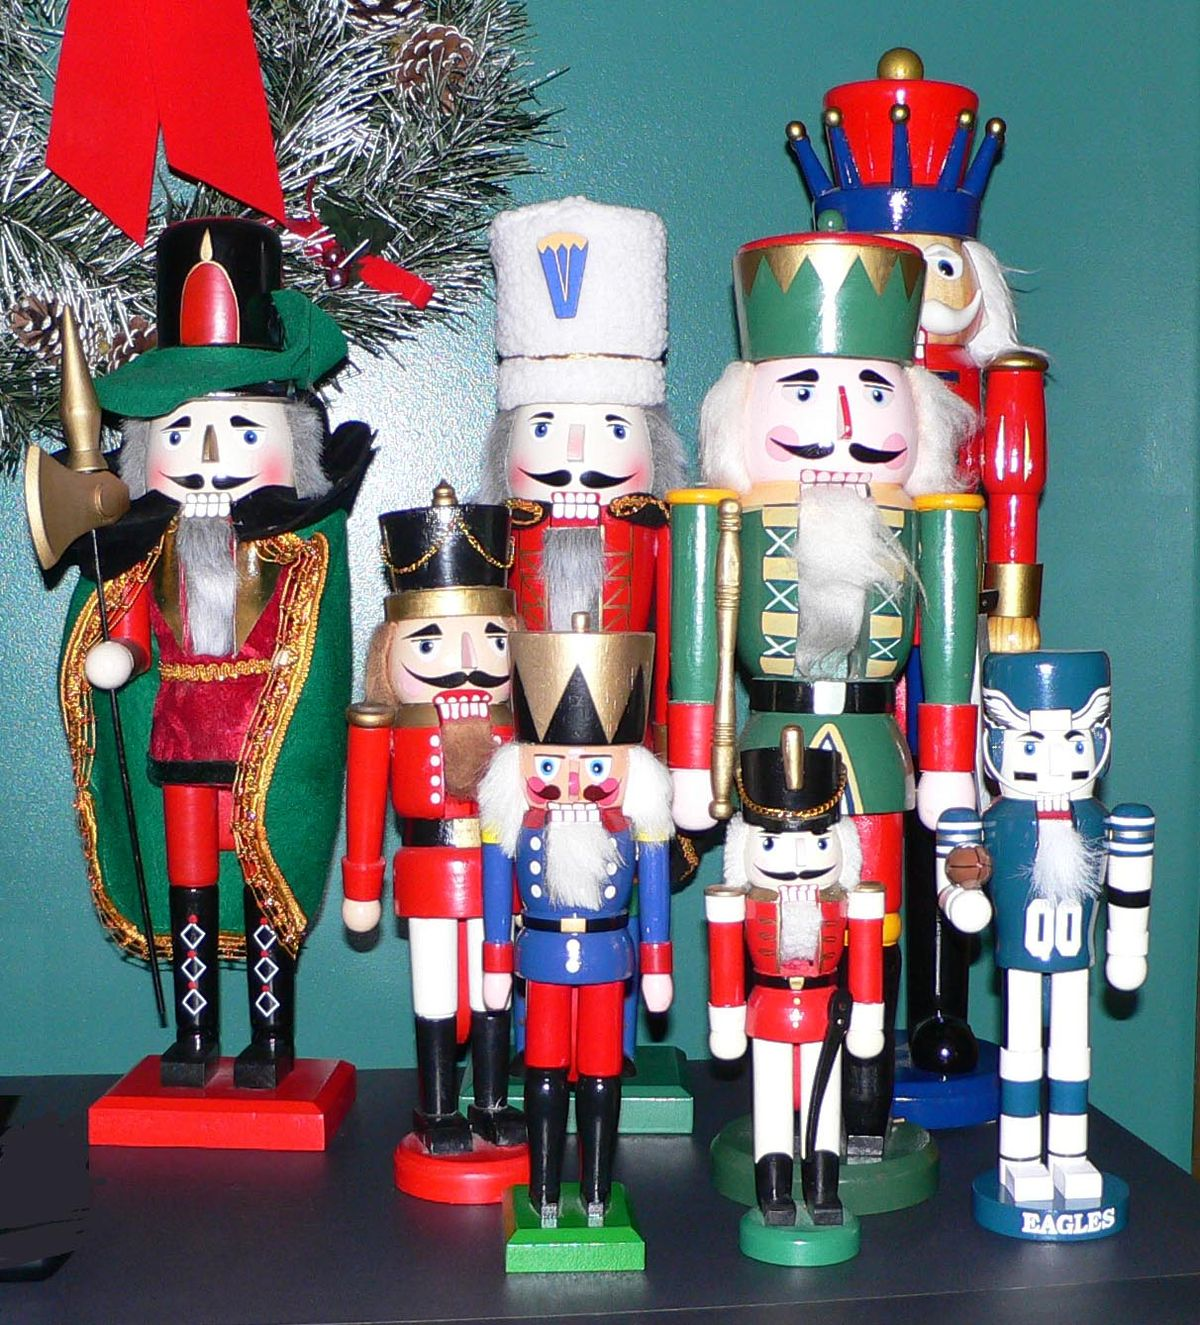 How to make a nutcracker christmas decoration - How To Make A Nutcracker Christmas Decoration 47